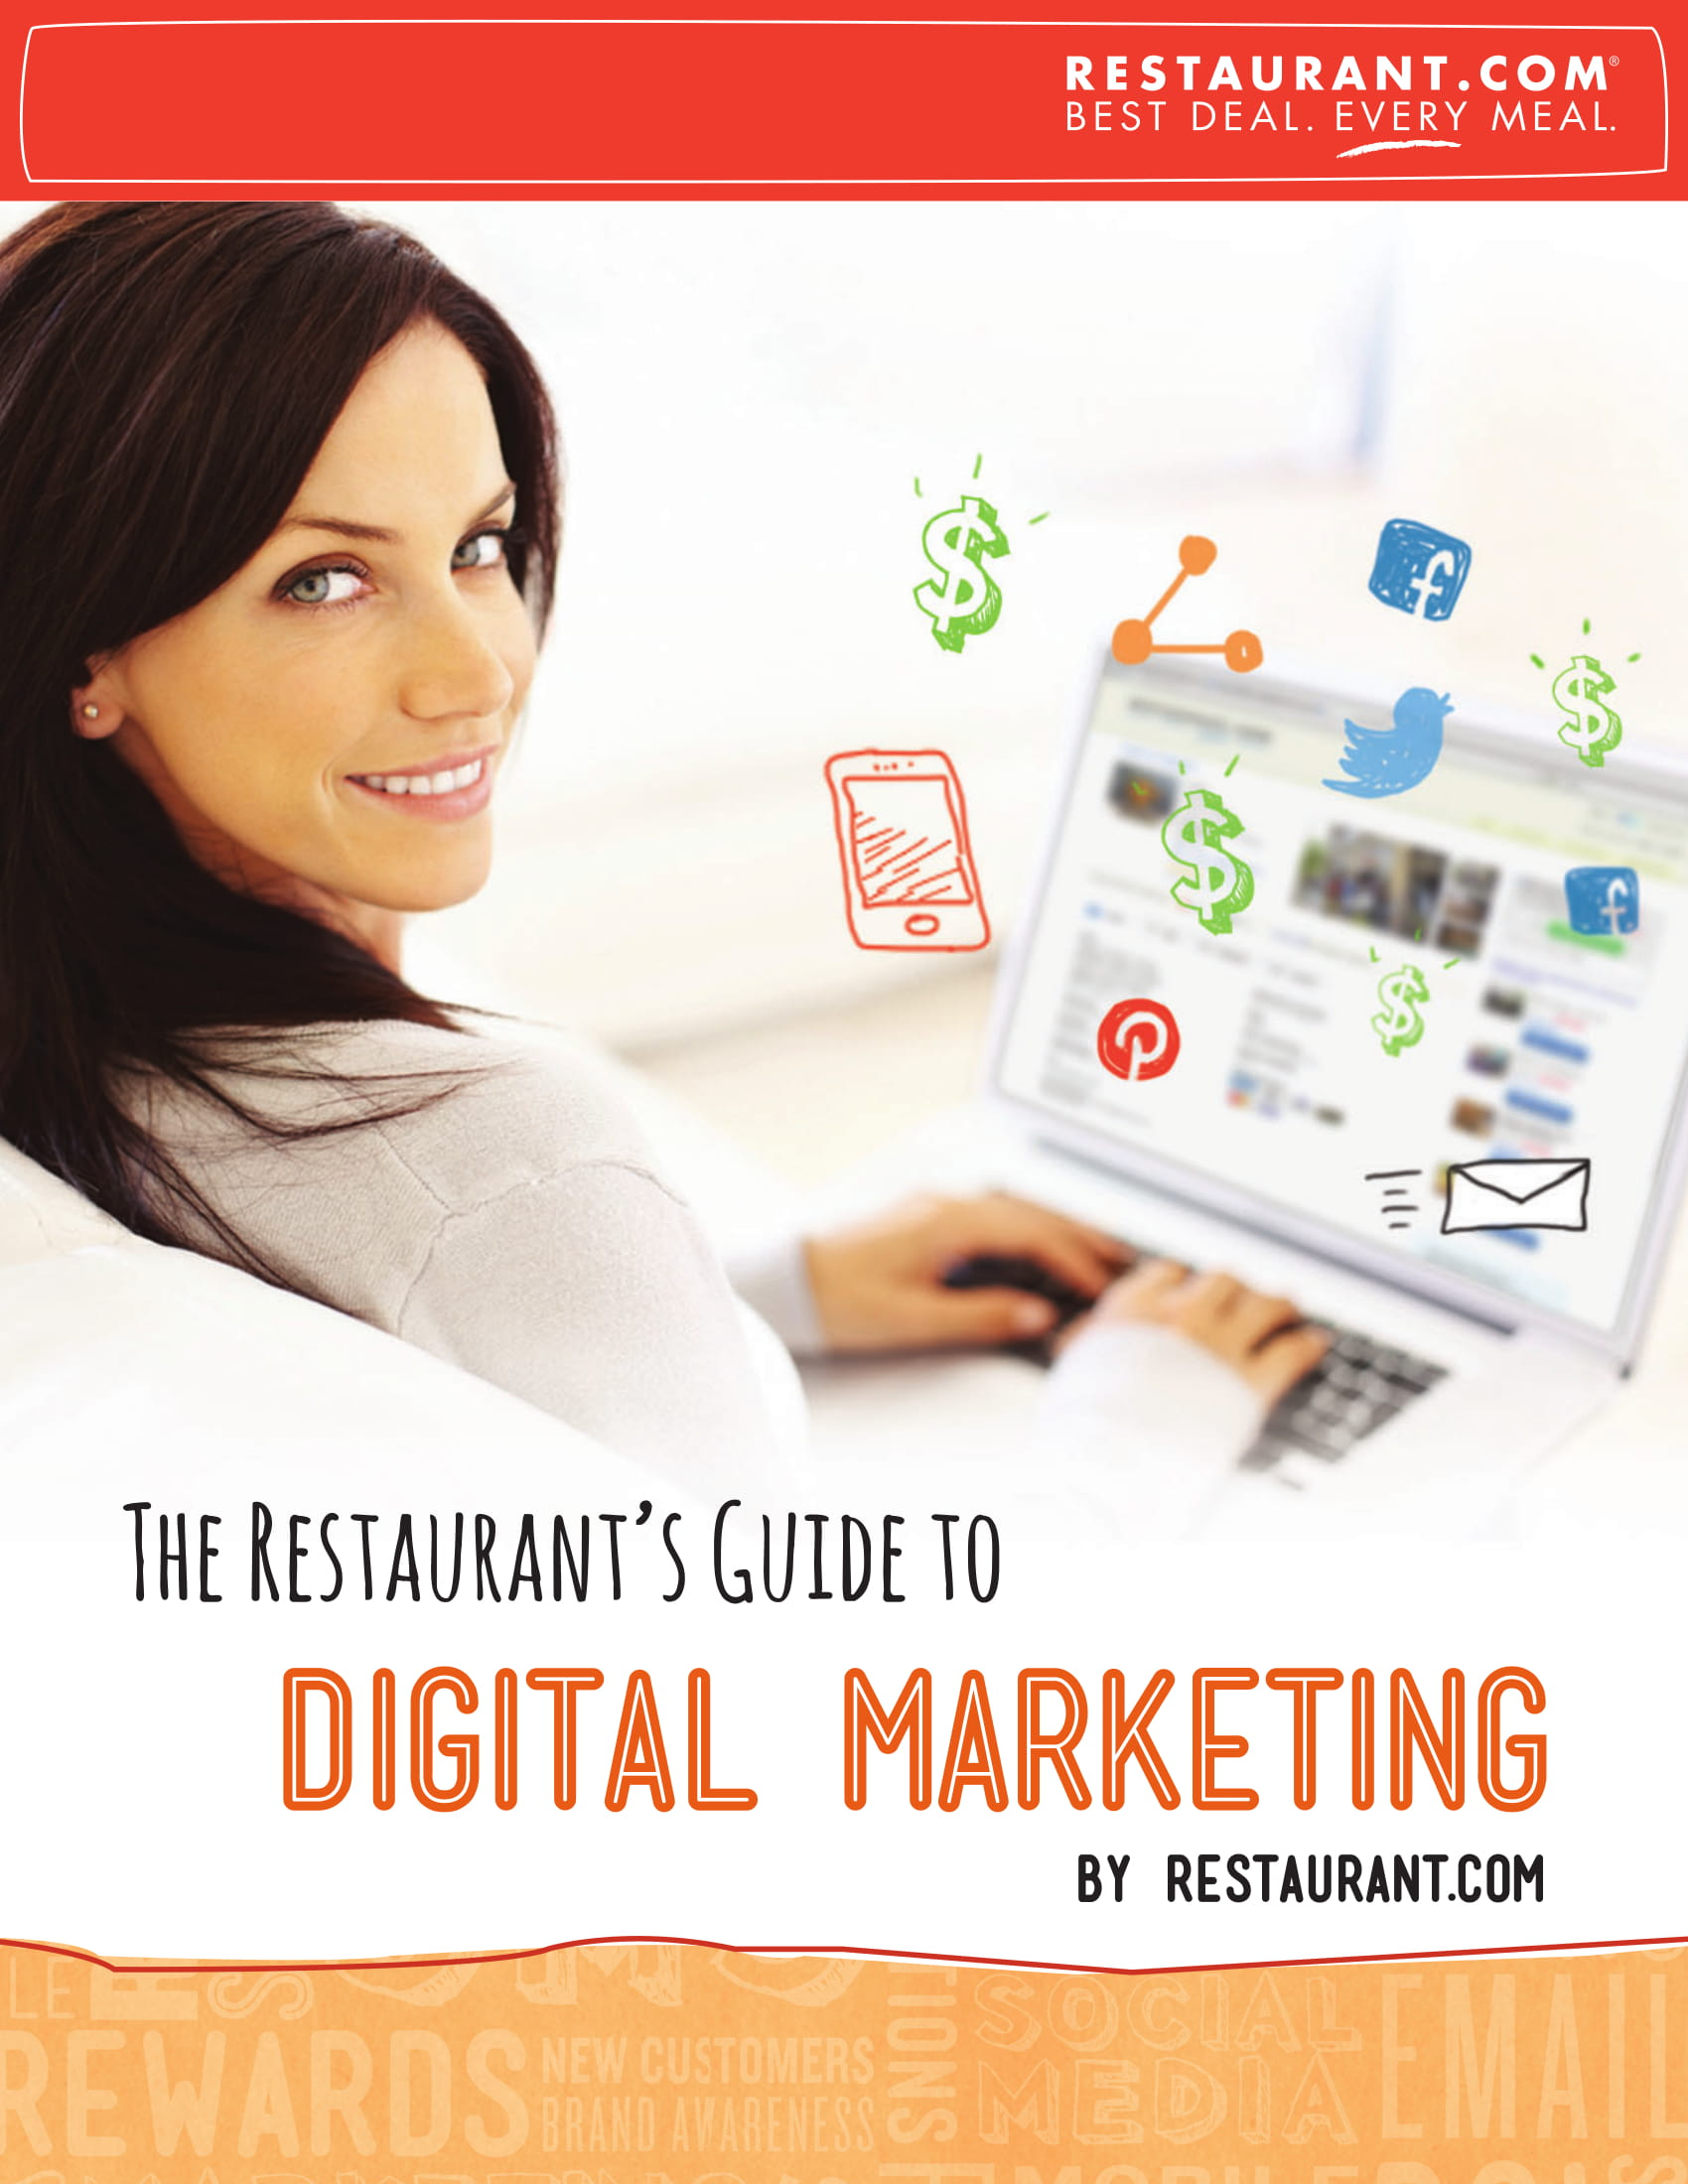 restaurant digital marketing and social media platform usage proposal example 01